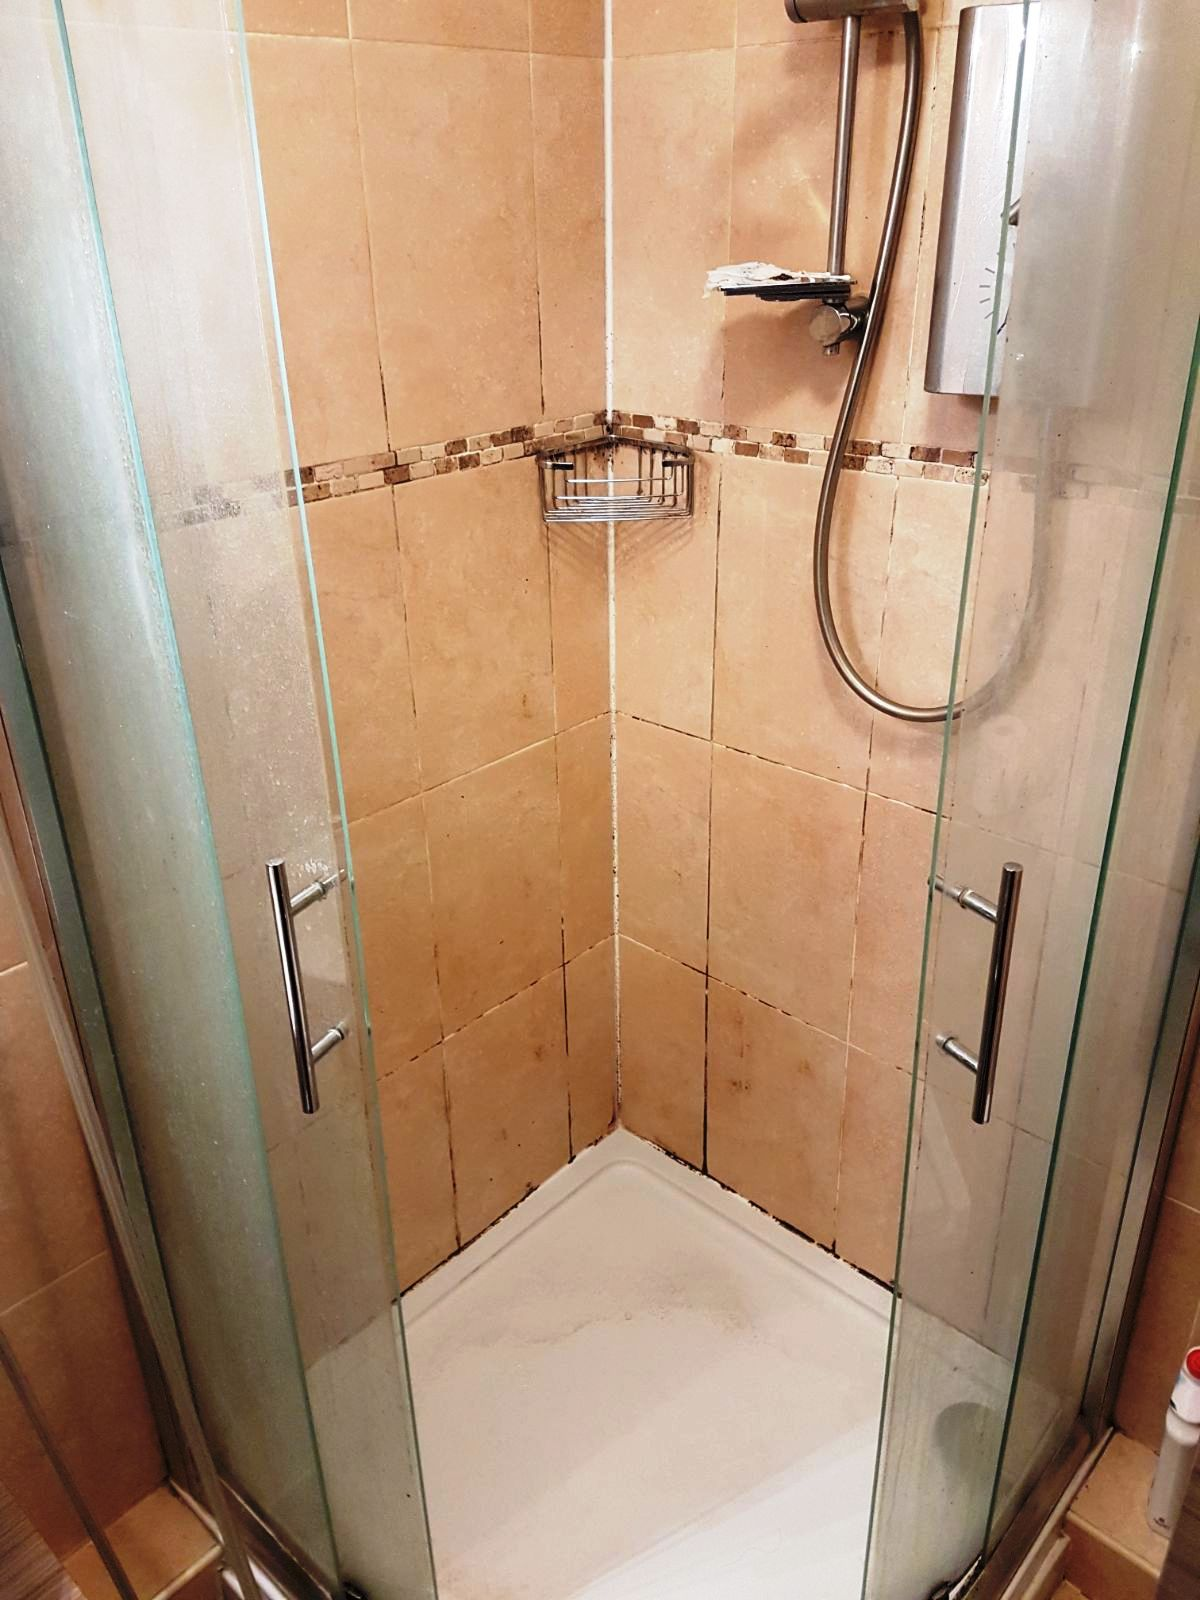 Mouldy Ceramic Tiled Shower Renovated In Uxbridge Tile Cleaners